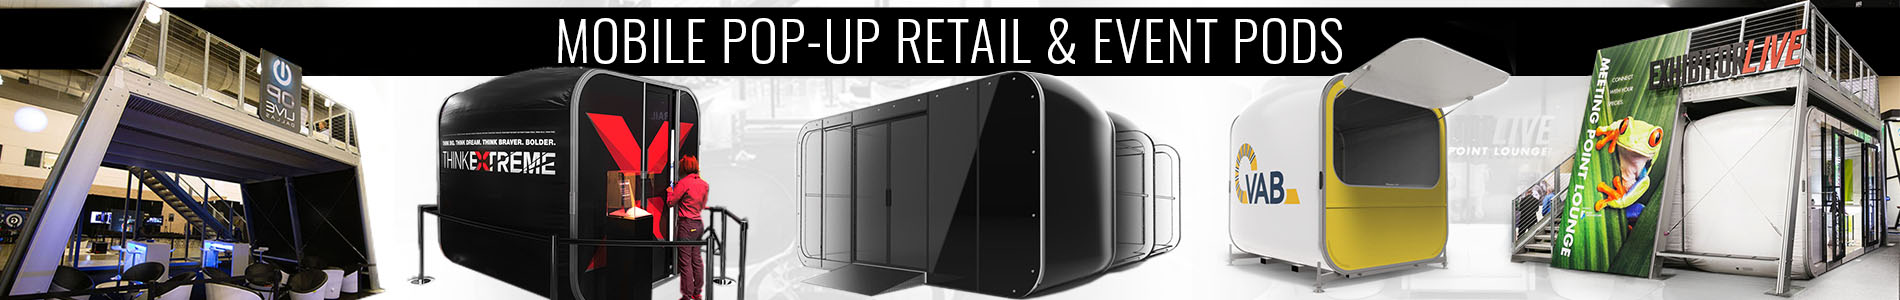 Mobile Pop-Up Retail & Event Pods Product Line